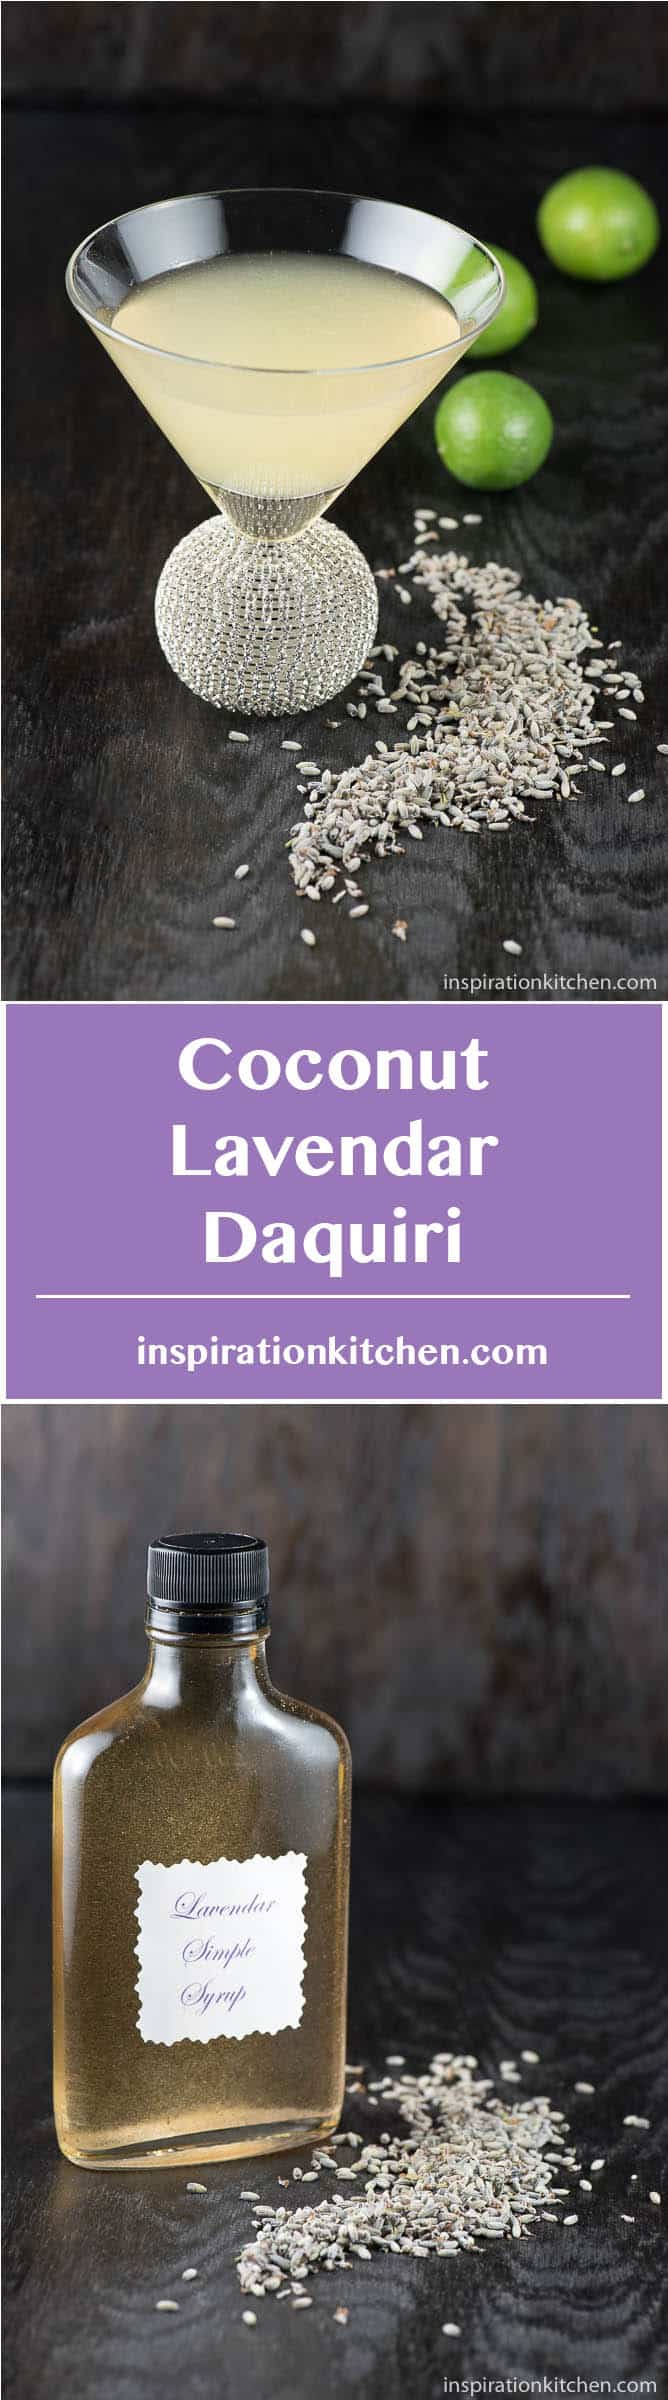 Coconut Lavendar Daquiri - inspirationkitchen.com